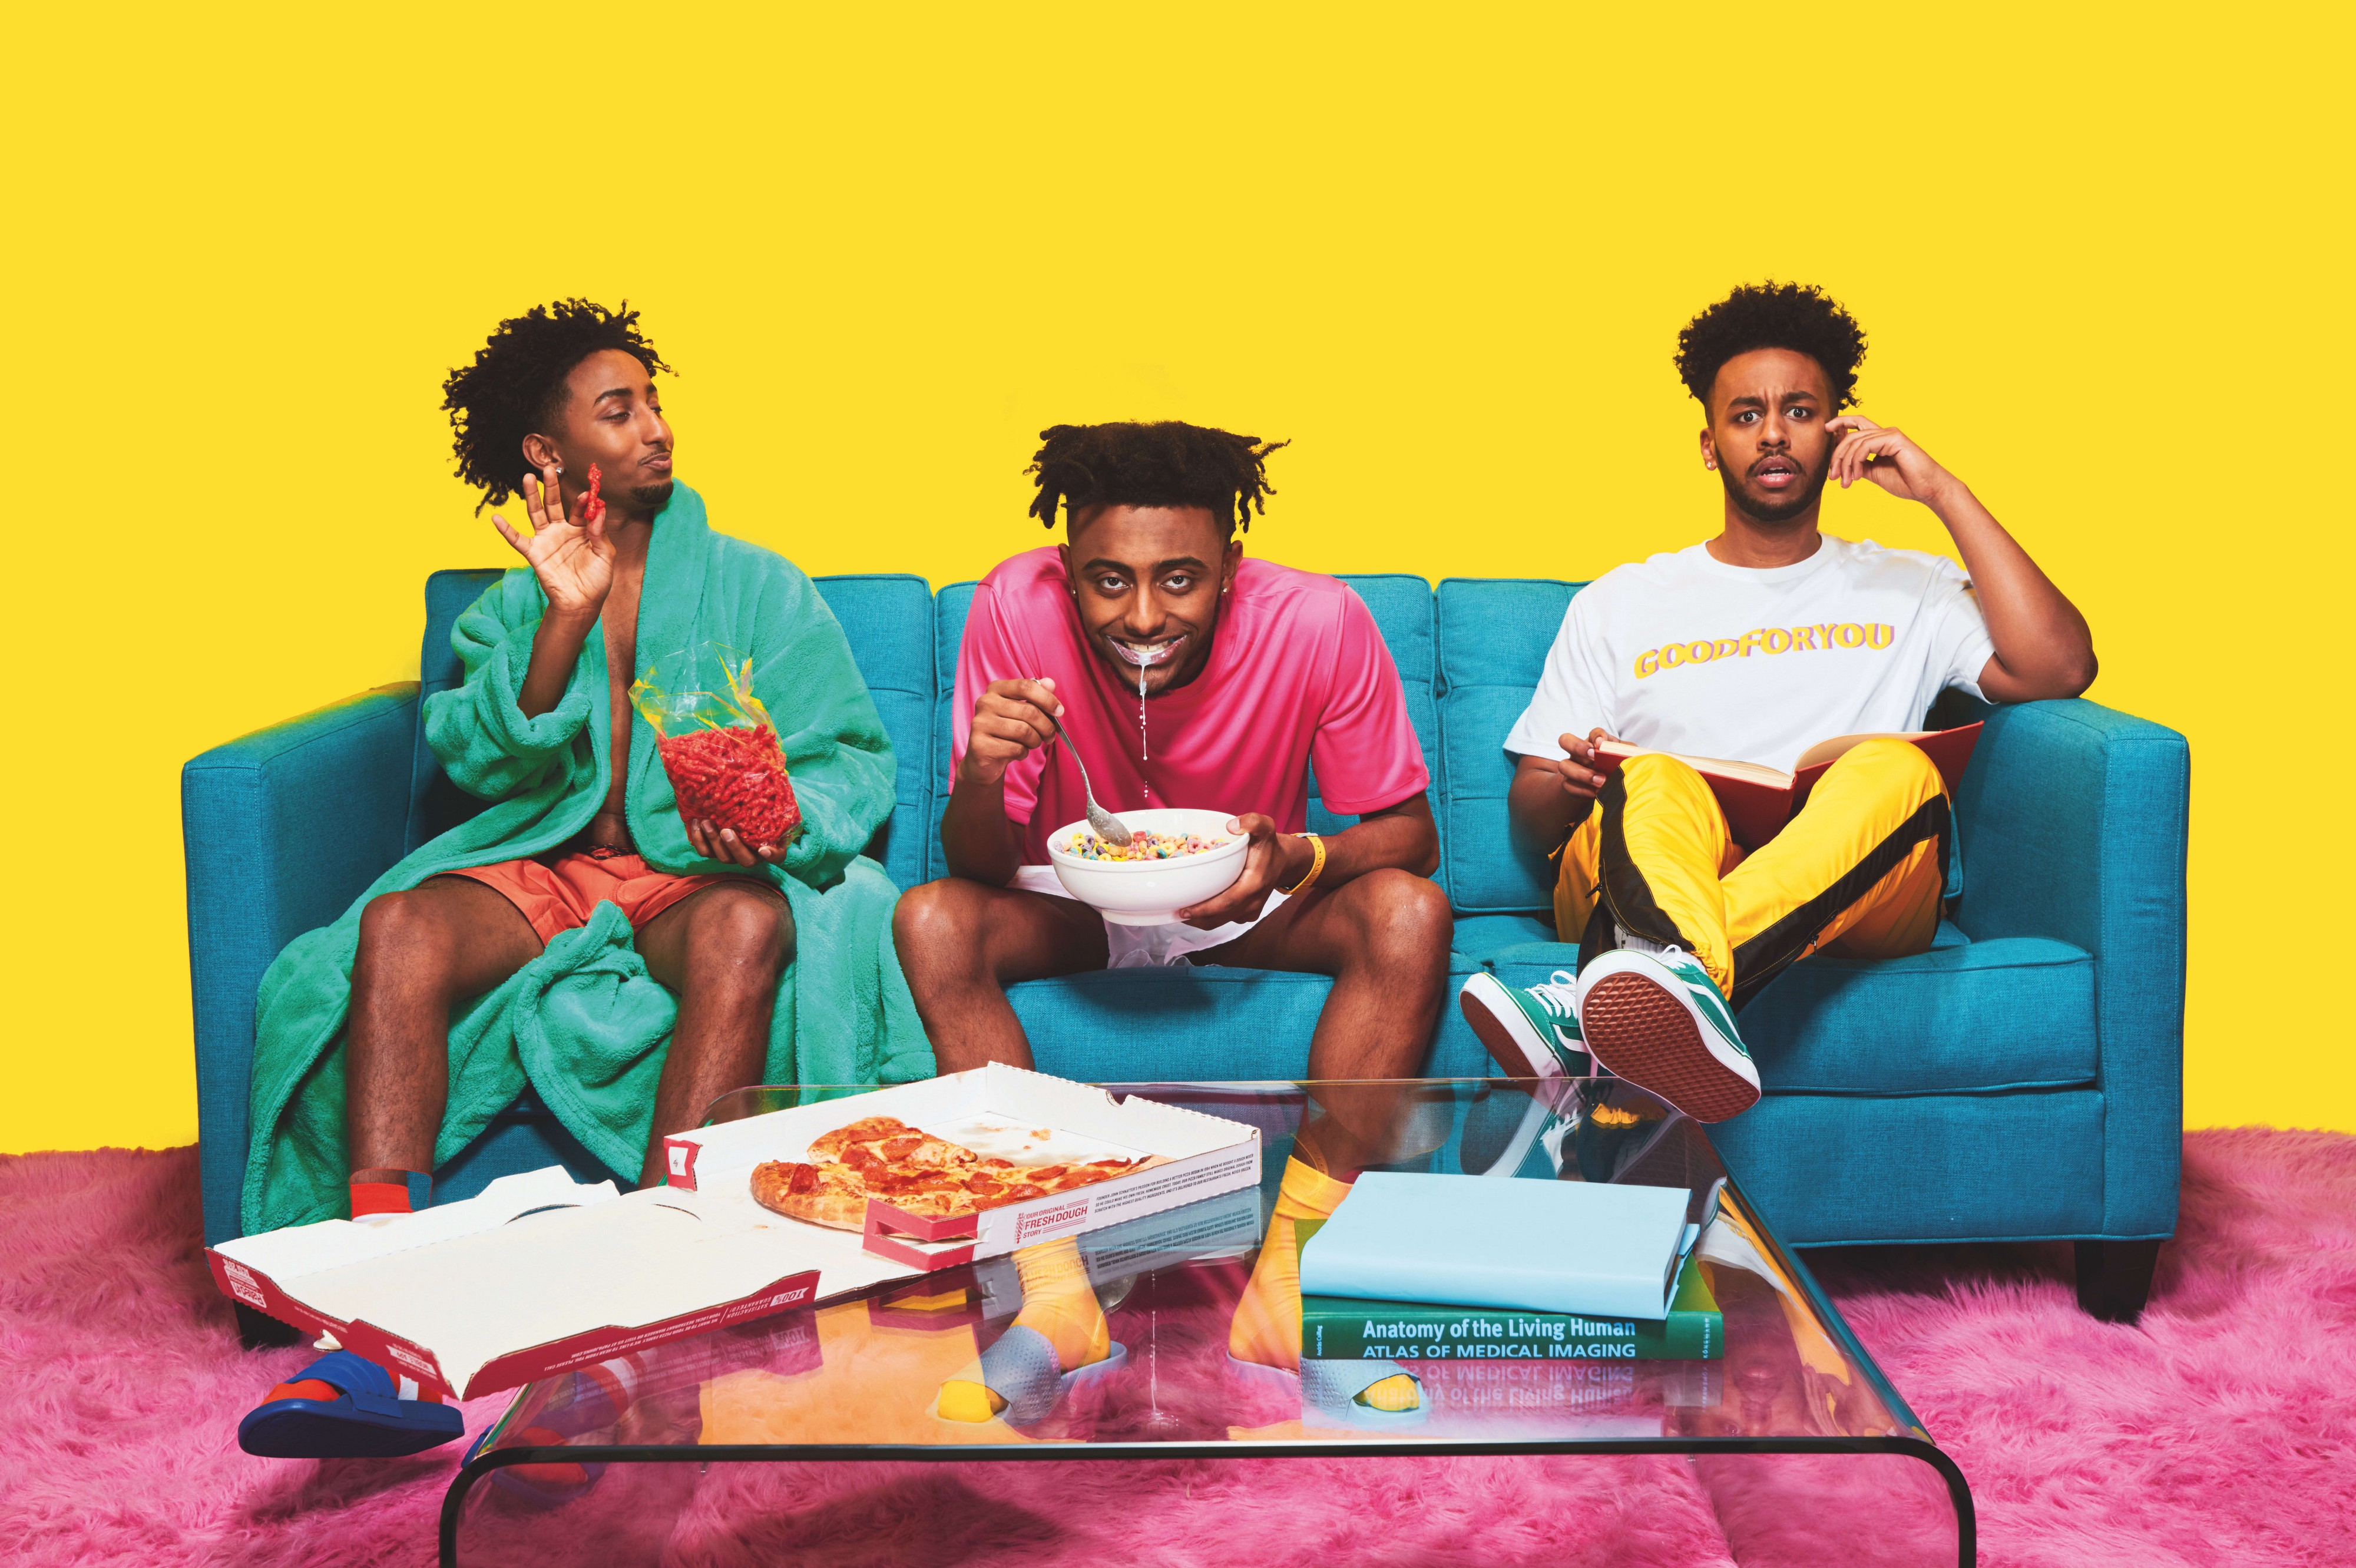 Wedding Crashers Amine.Interview Outakes Amine On Meeting Andre 3000 And Collaborating